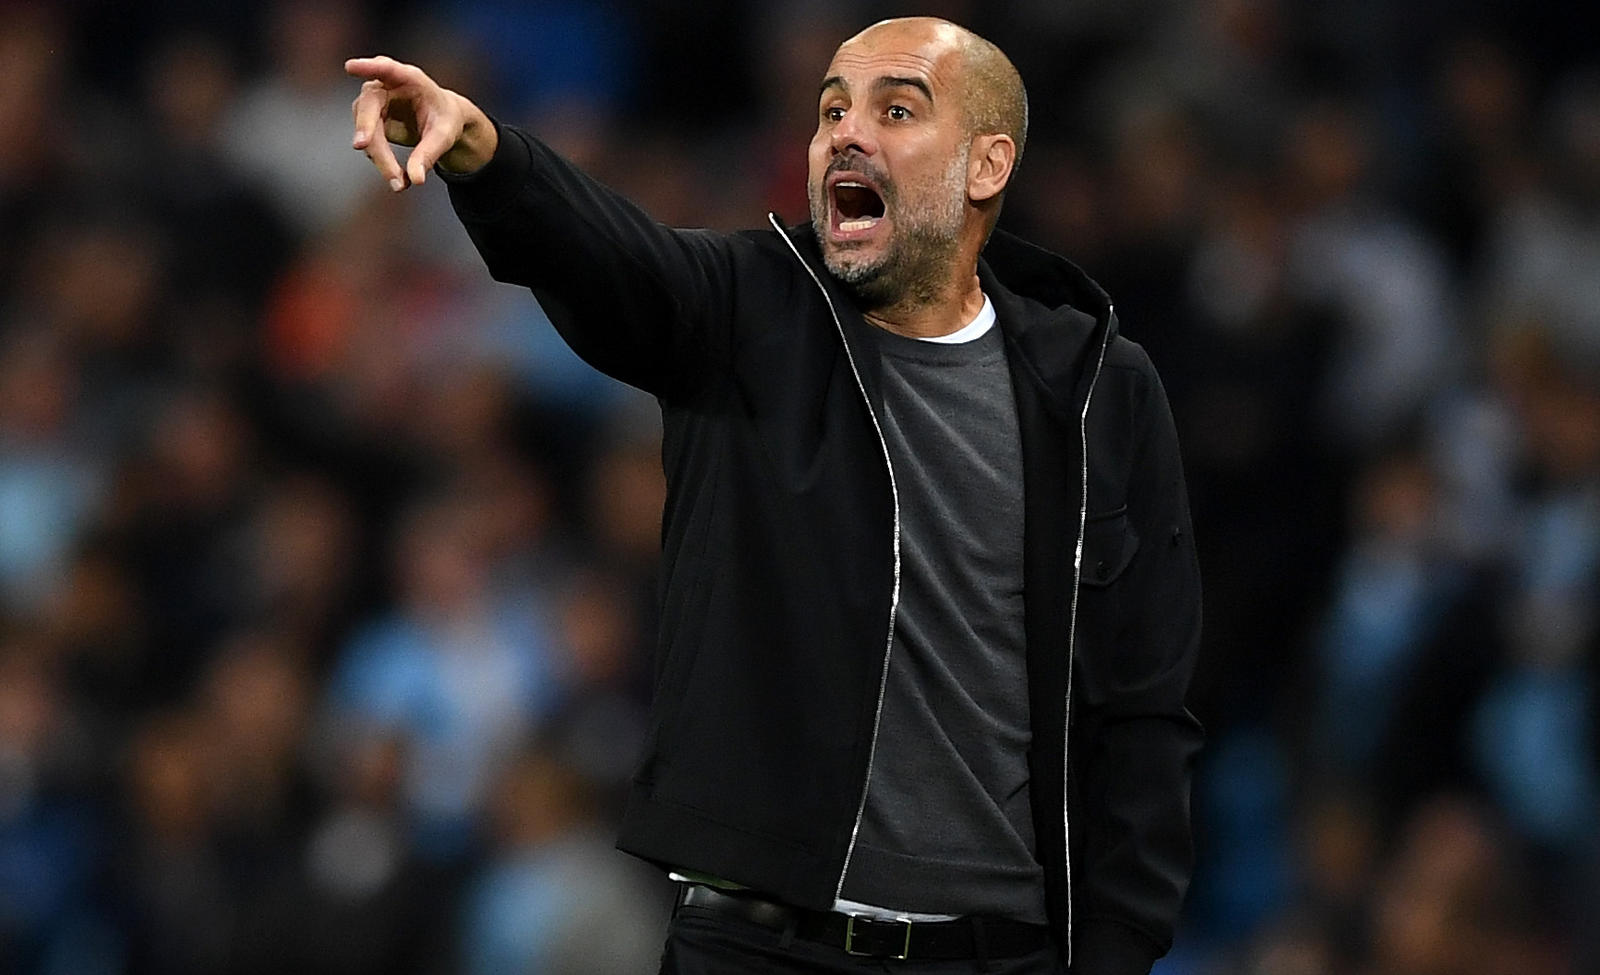 MANCHESTER, ENGLAND - OCTOBER 17:  Josep Guardiola, Manager of Manchester City gives his team instructions during the UEFA Champions League group F match between Manchester City and SSC Napoli at Etihad Stadium on October 17, 2017 in Manchester, Unit